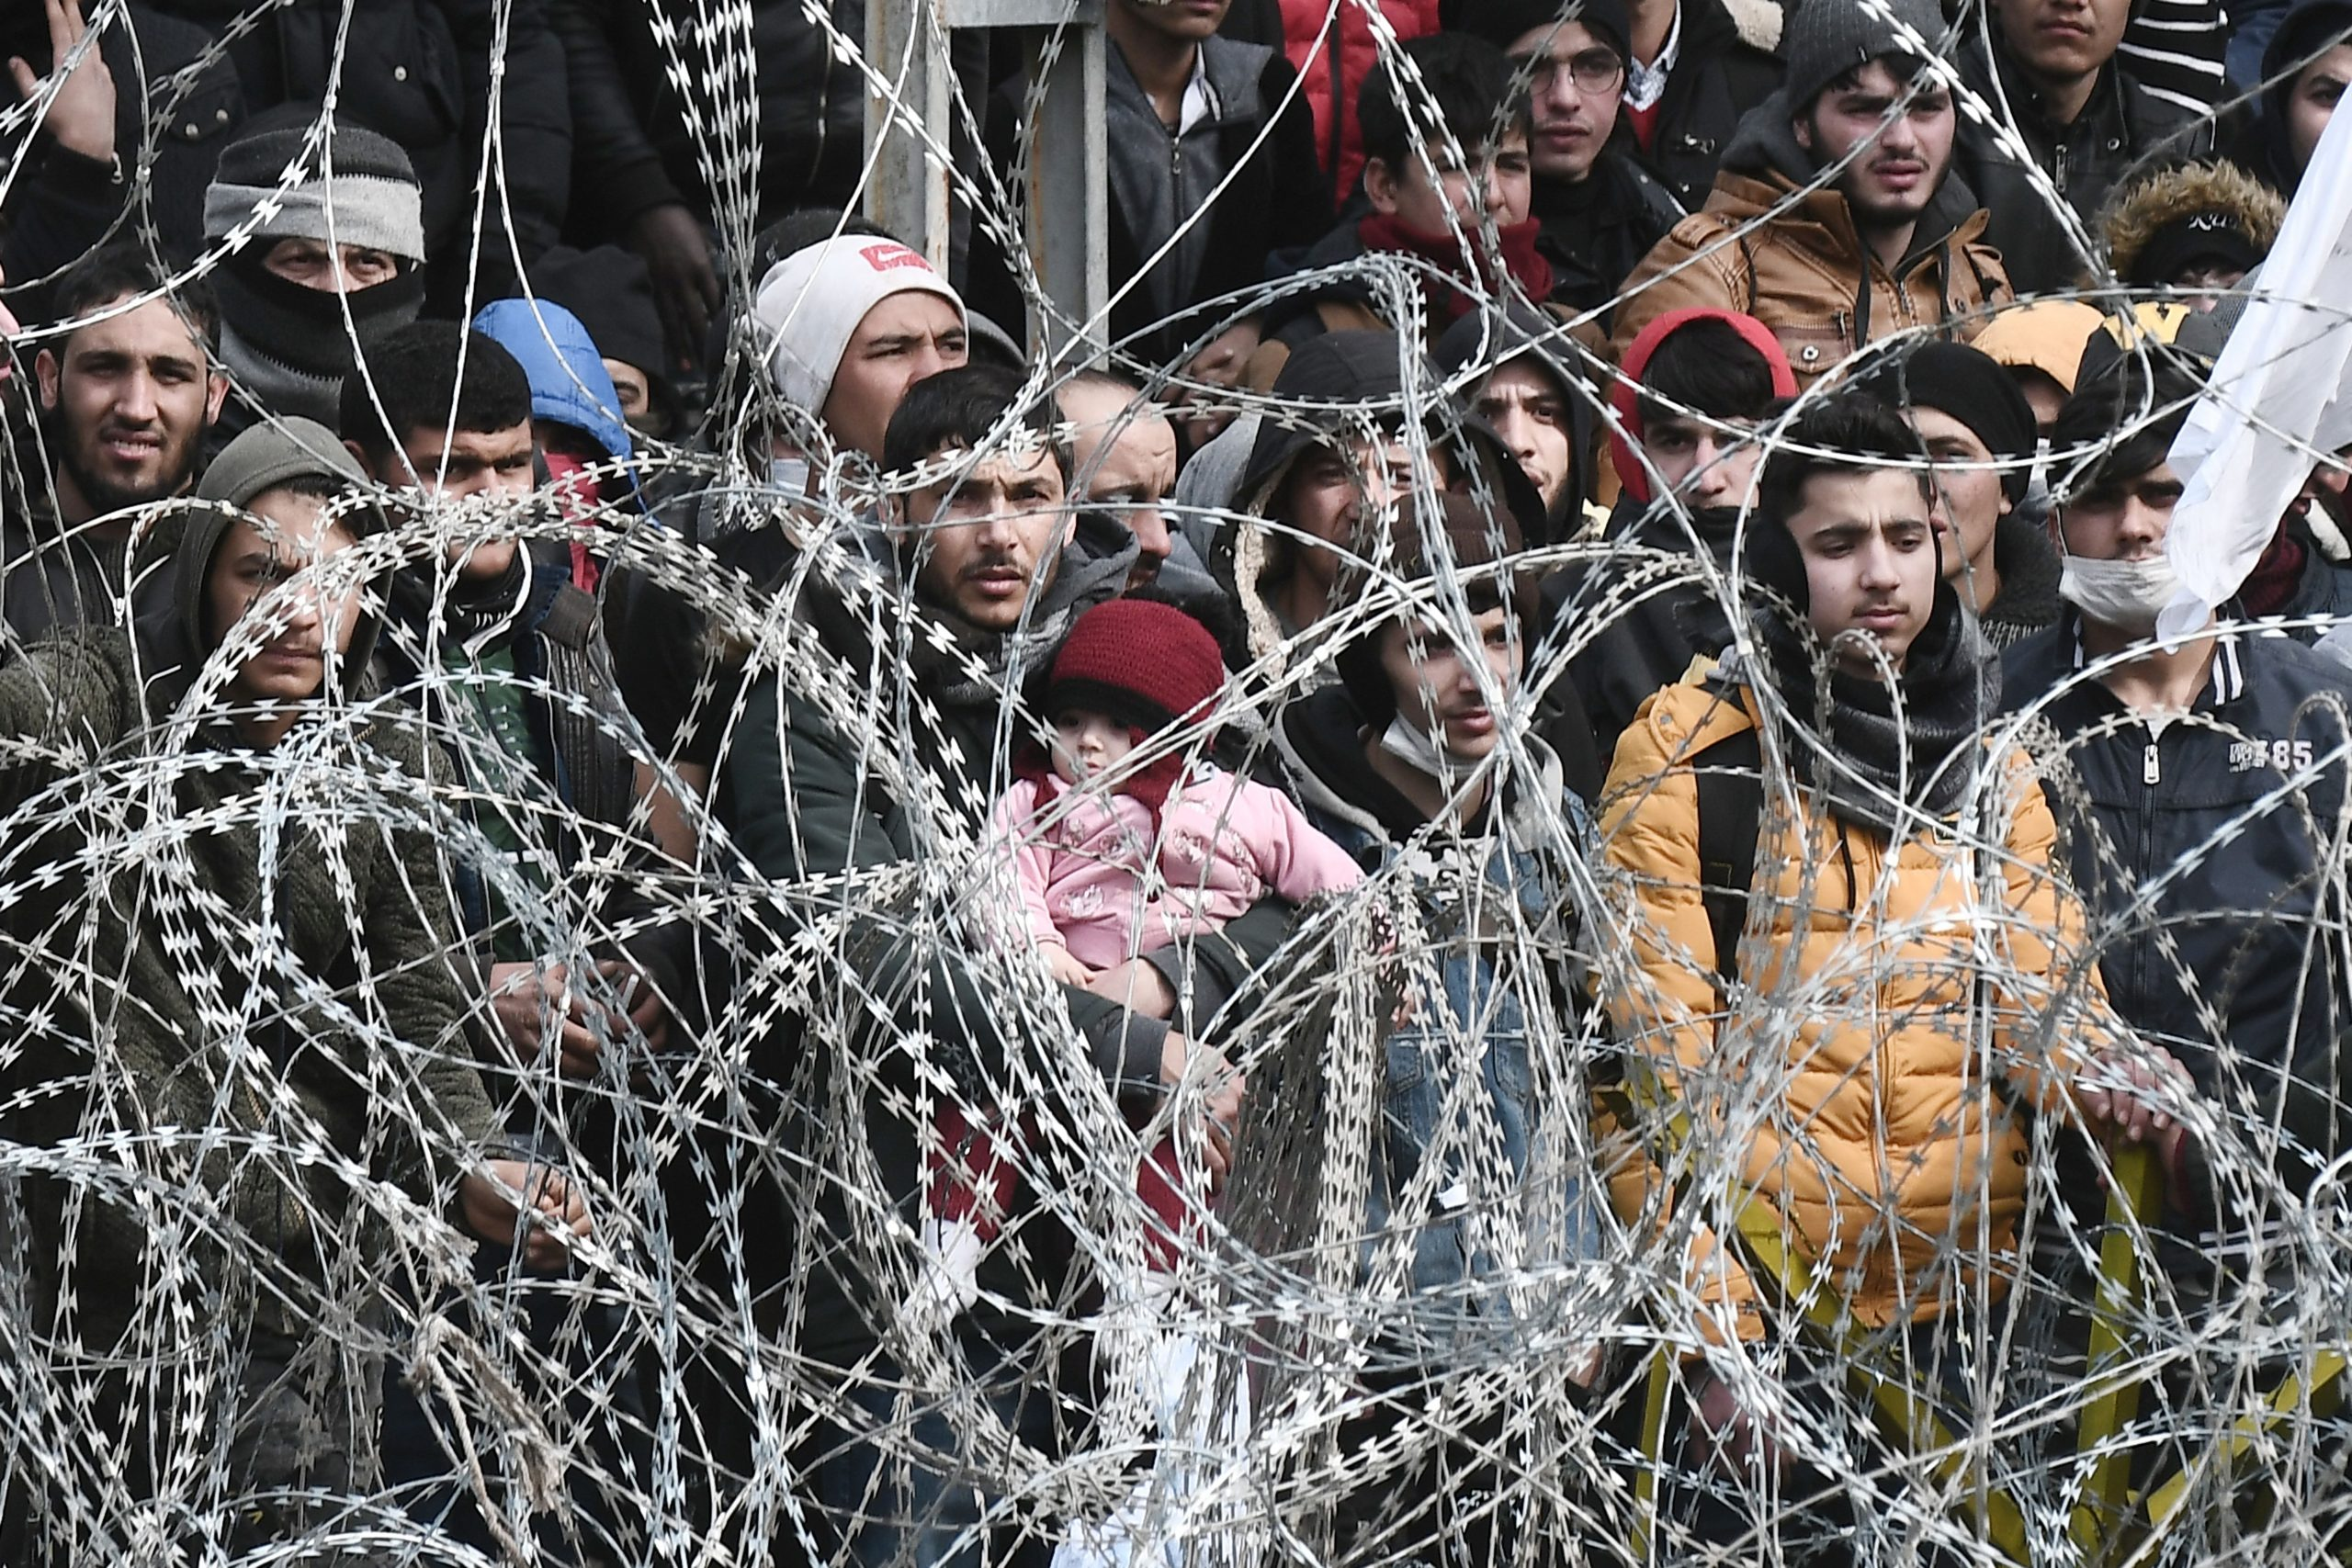 Greece: Inhumane asylum measures will put lives at risk